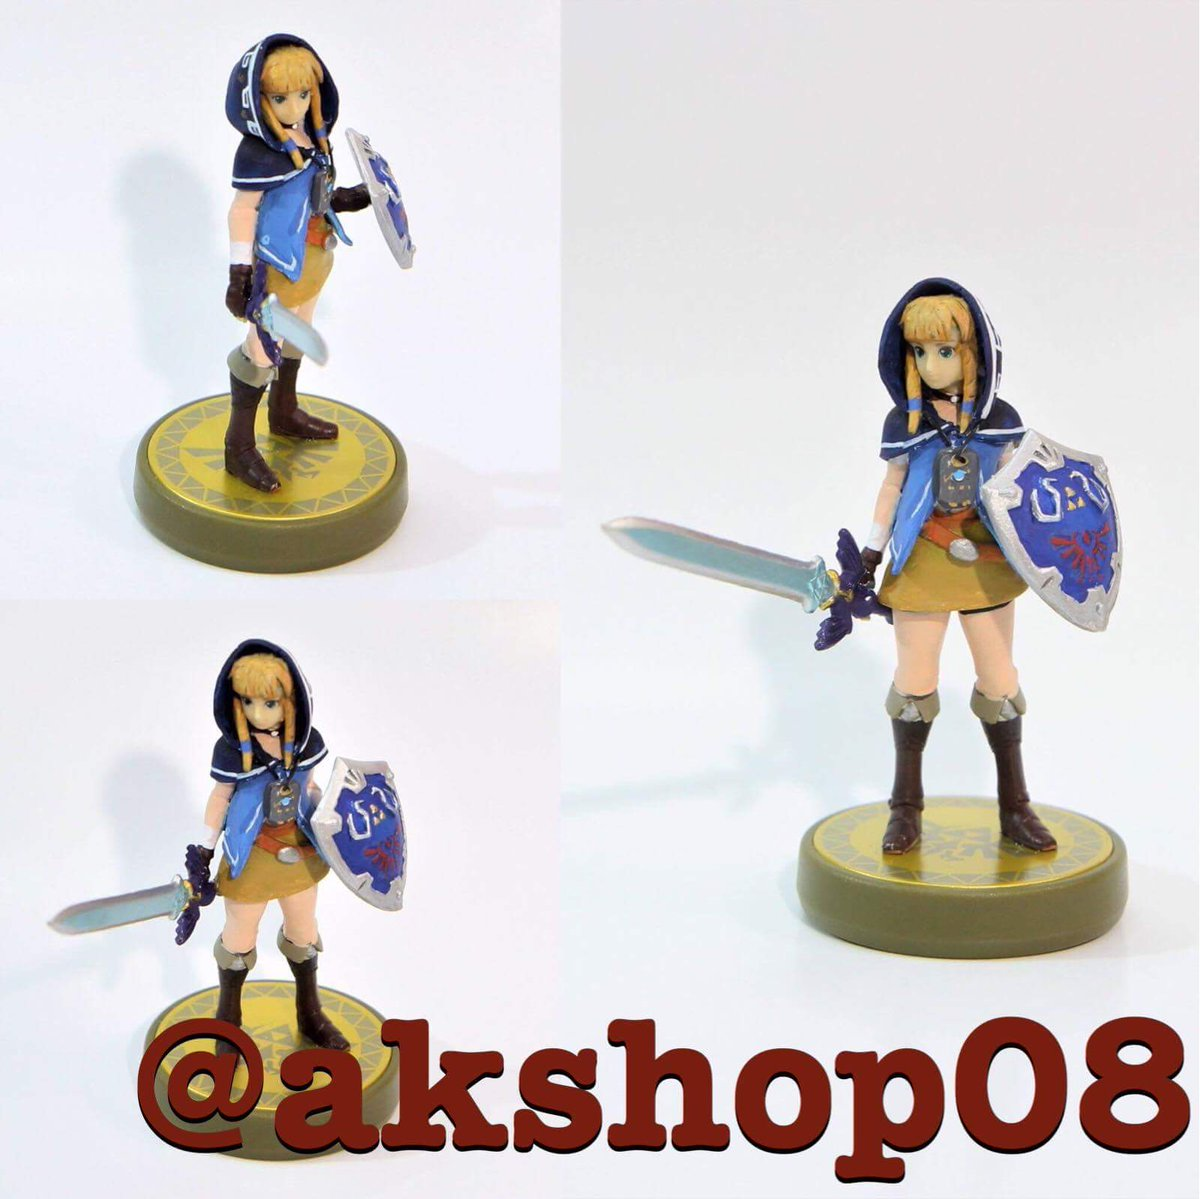 Akshop08 On Twitter I Am Still Hoping For Alt Playable Character